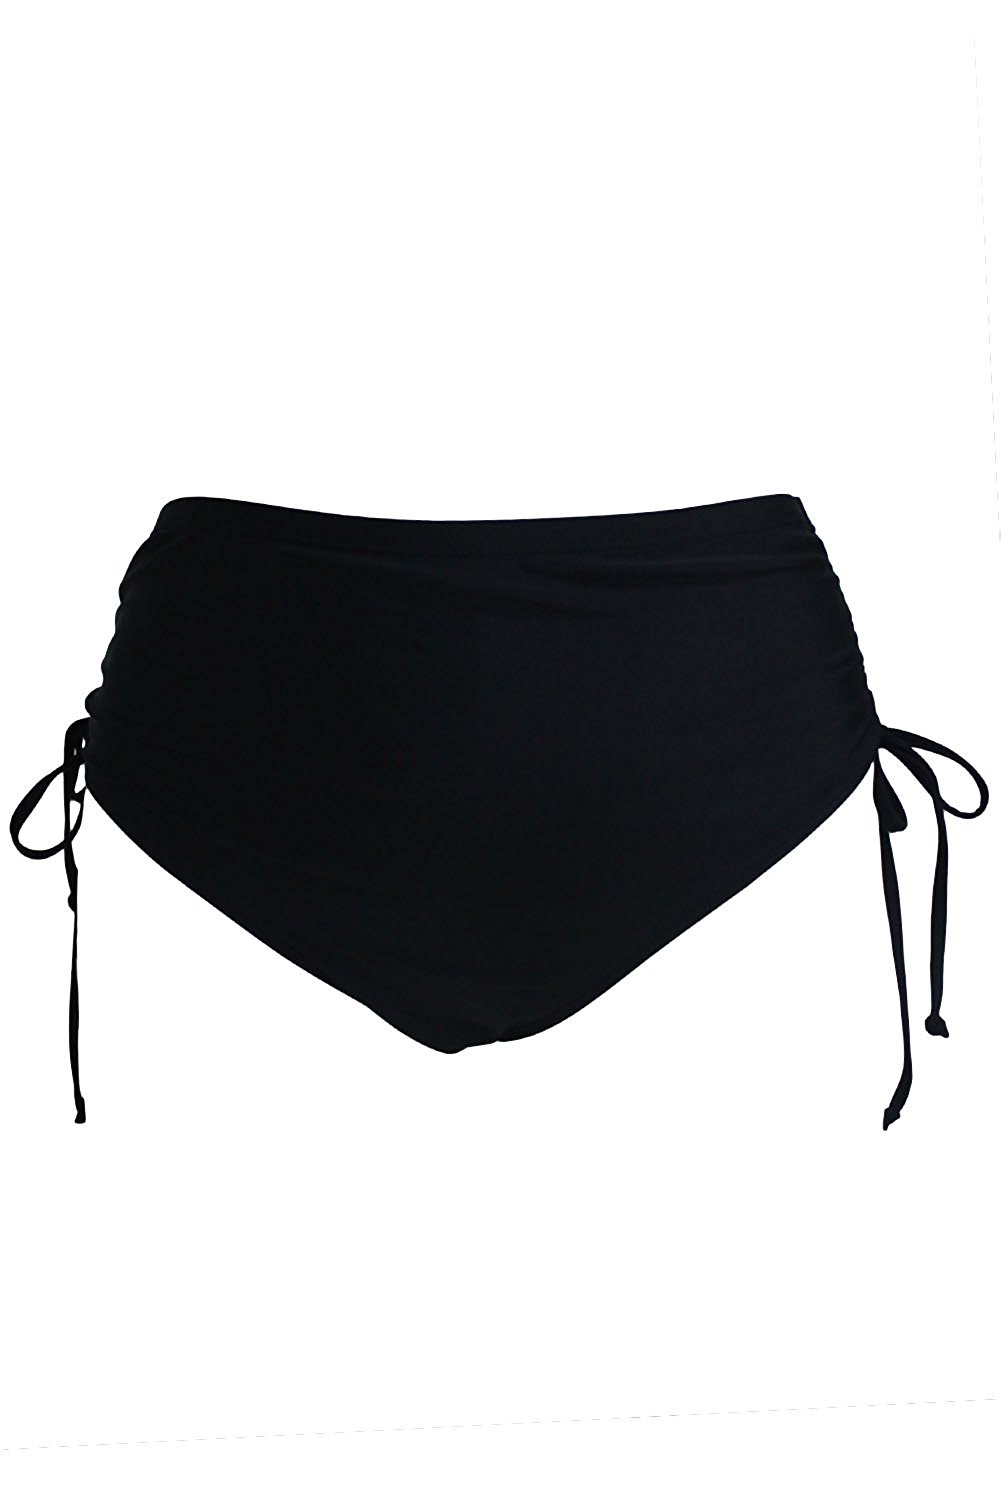 b987c9503c Get Quotations · Prime Leader Black High Waist Side Ruched Swim Bottoms For  Women